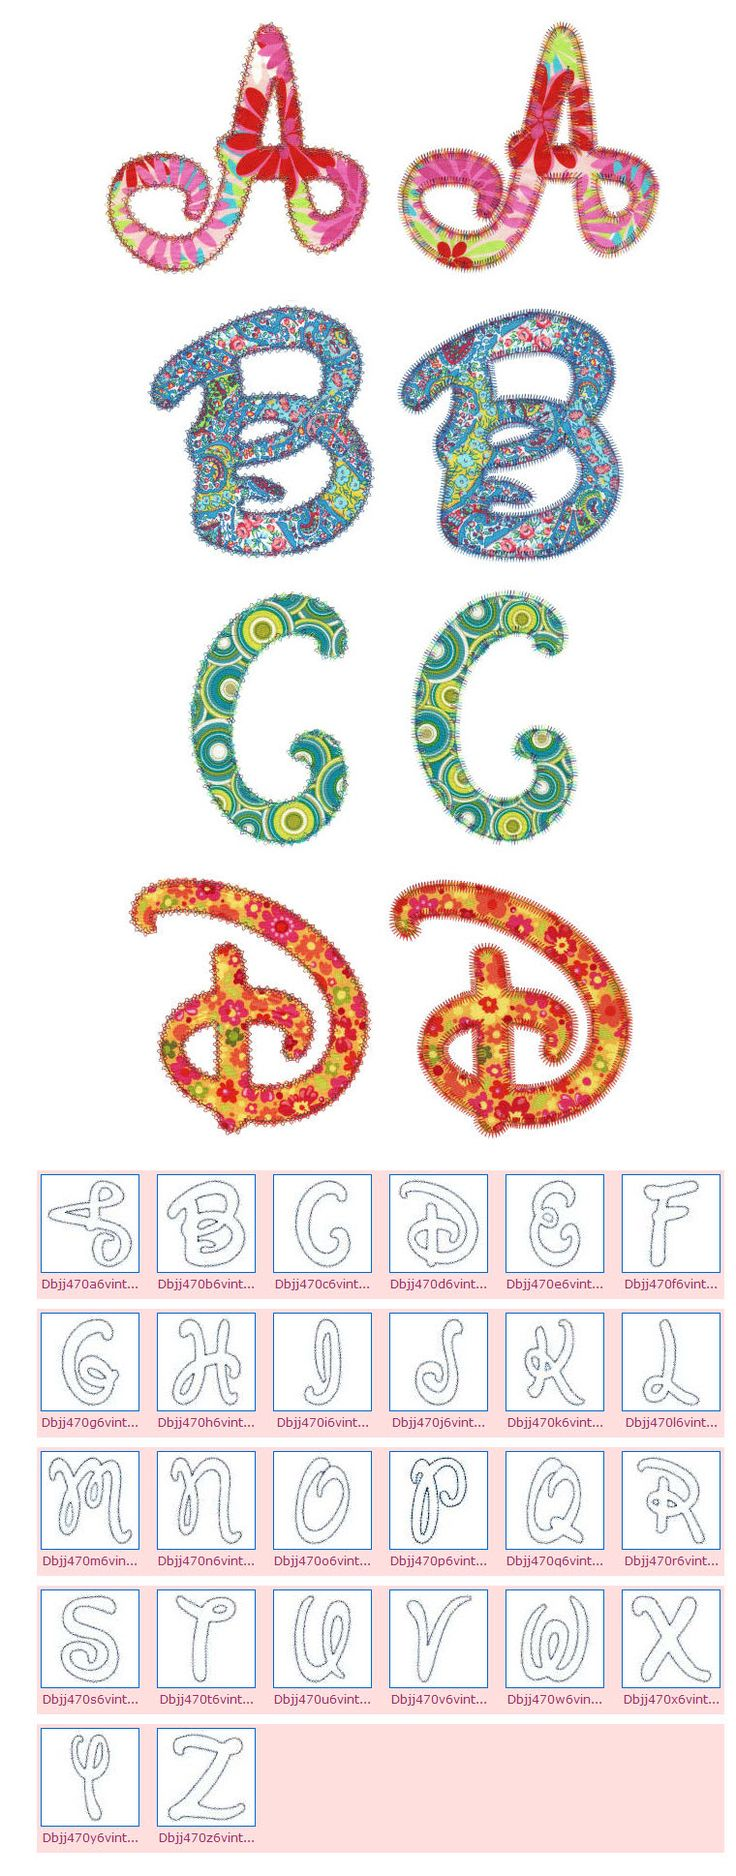 Embroidery | Free Machine Embroidery Designs | Playful Script Applique Alphabet